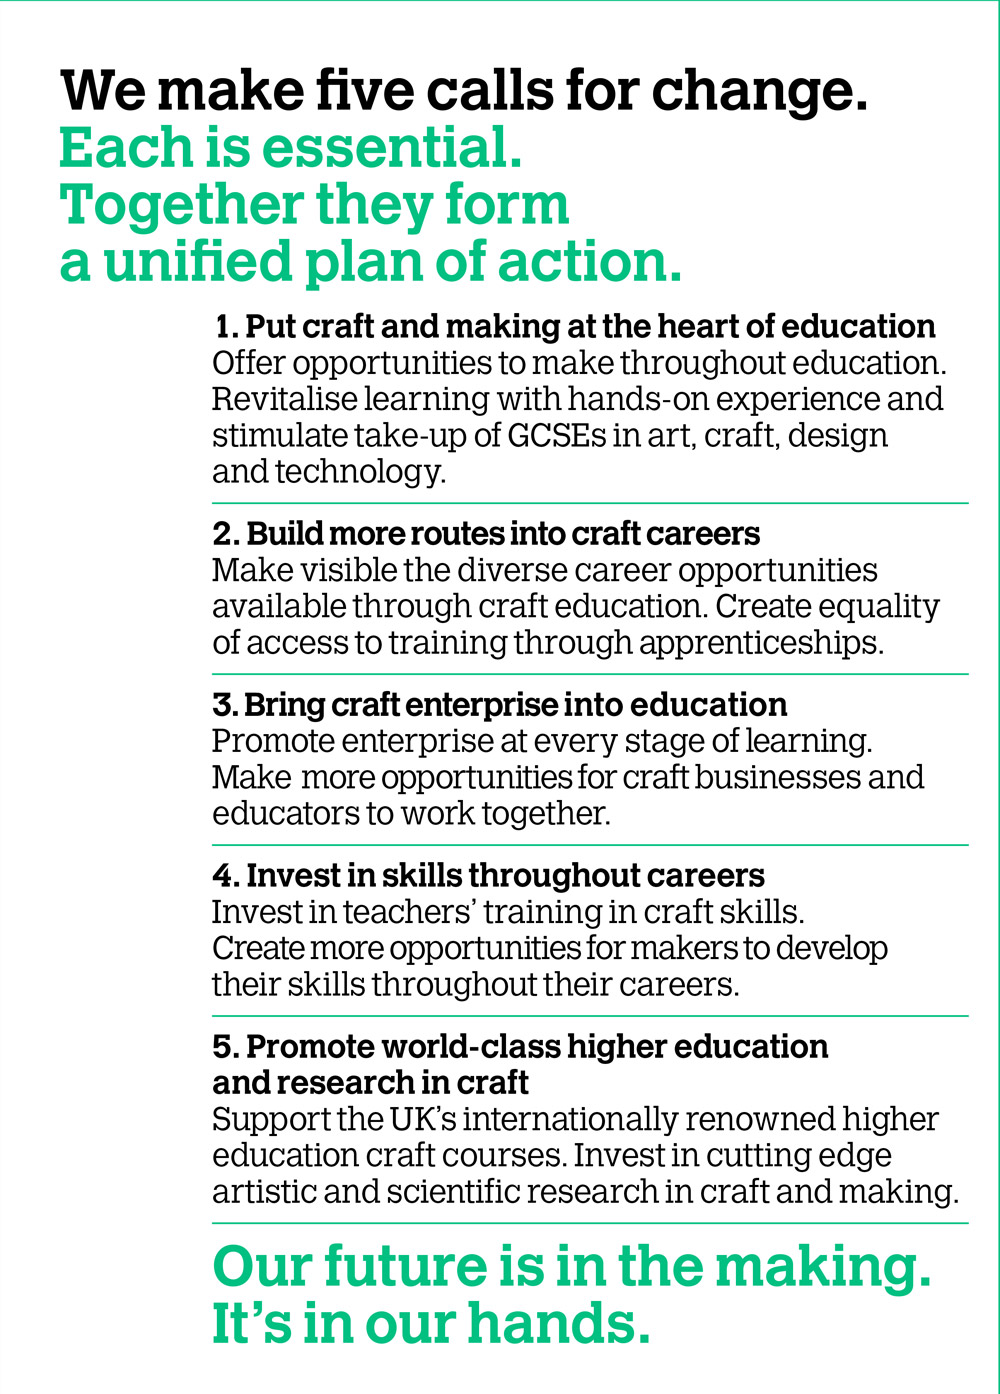 Crafts Council Launches Education Manifesto